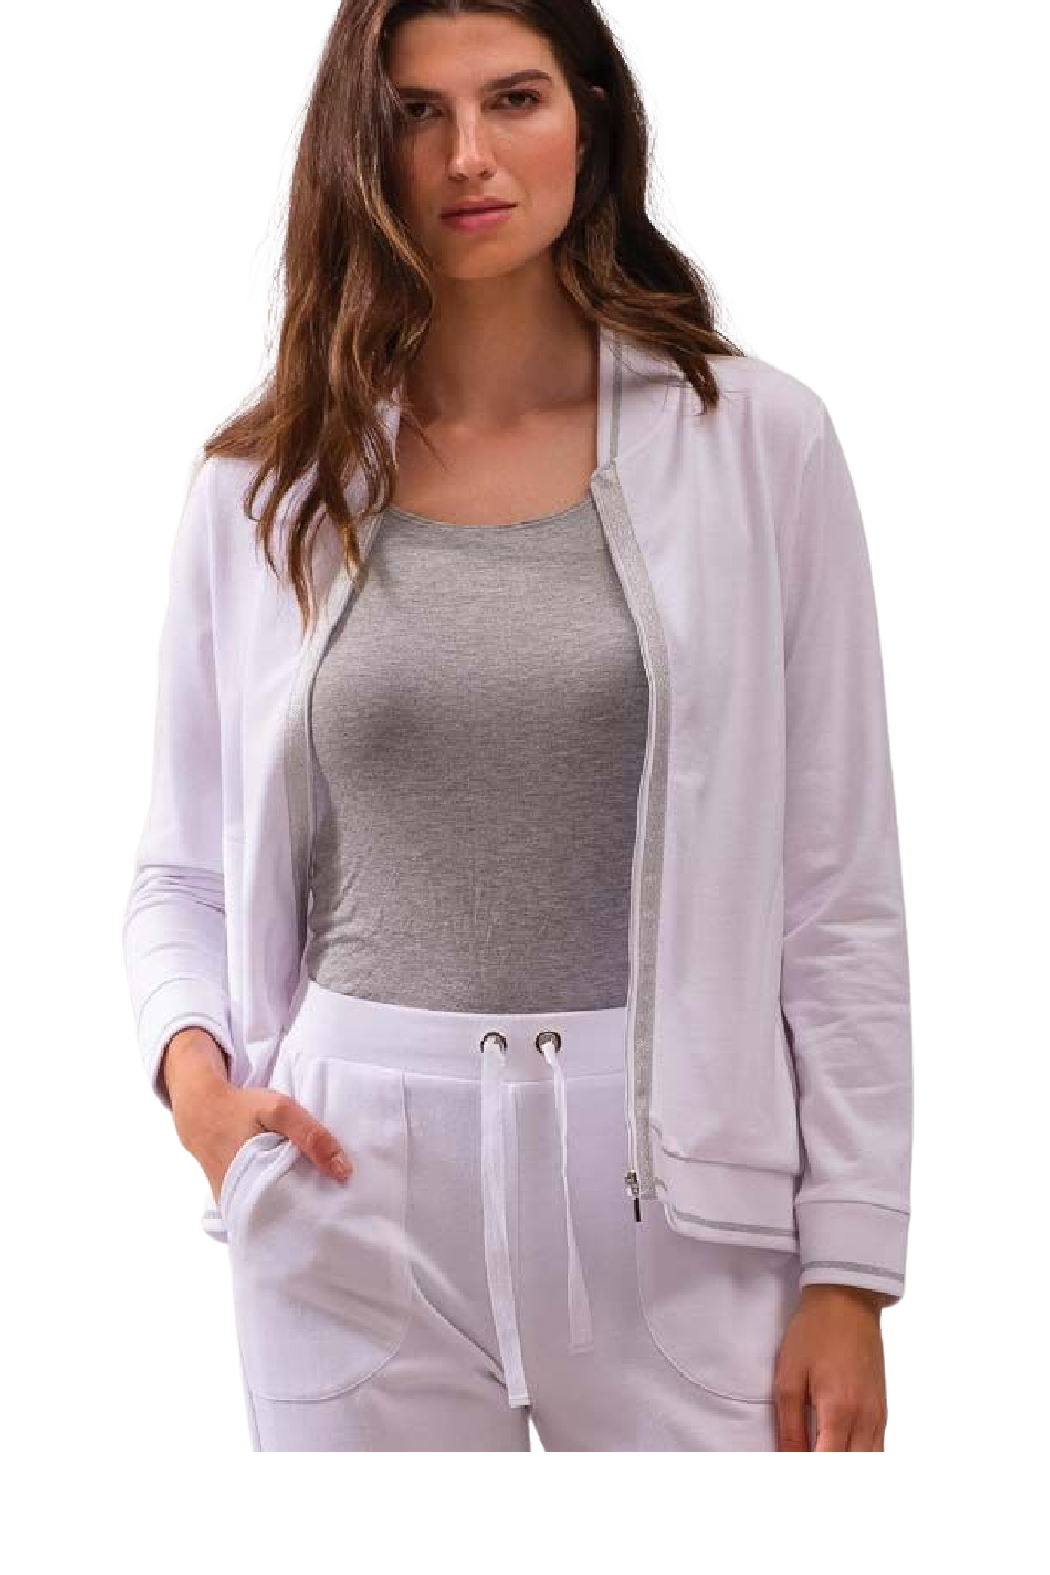 Alison Sheri White and Silver Zip Front Jacket - Main Image